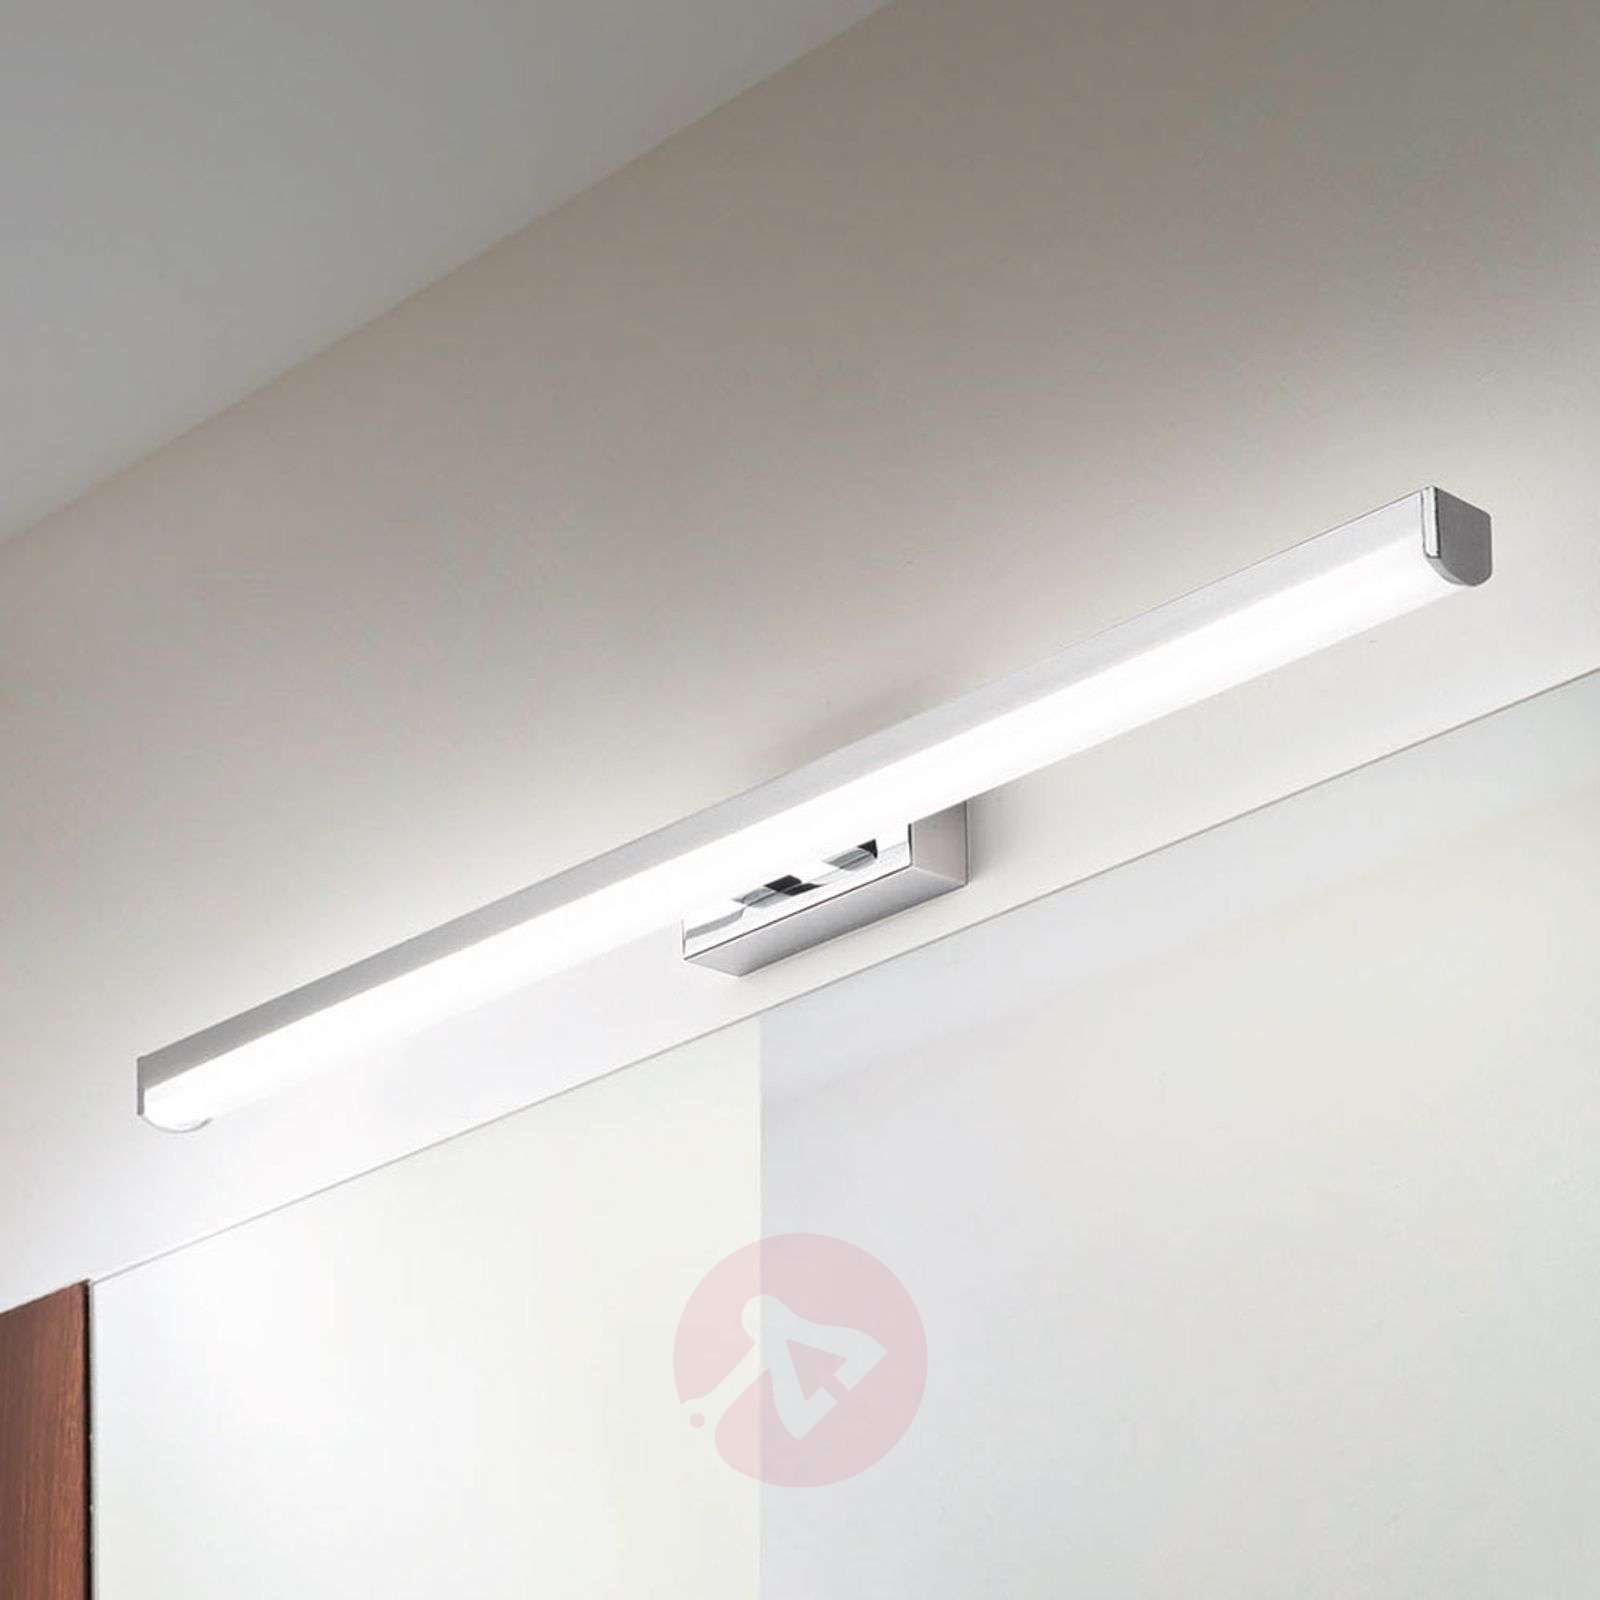 Acquista applique led nala per specchi e quadri lampade